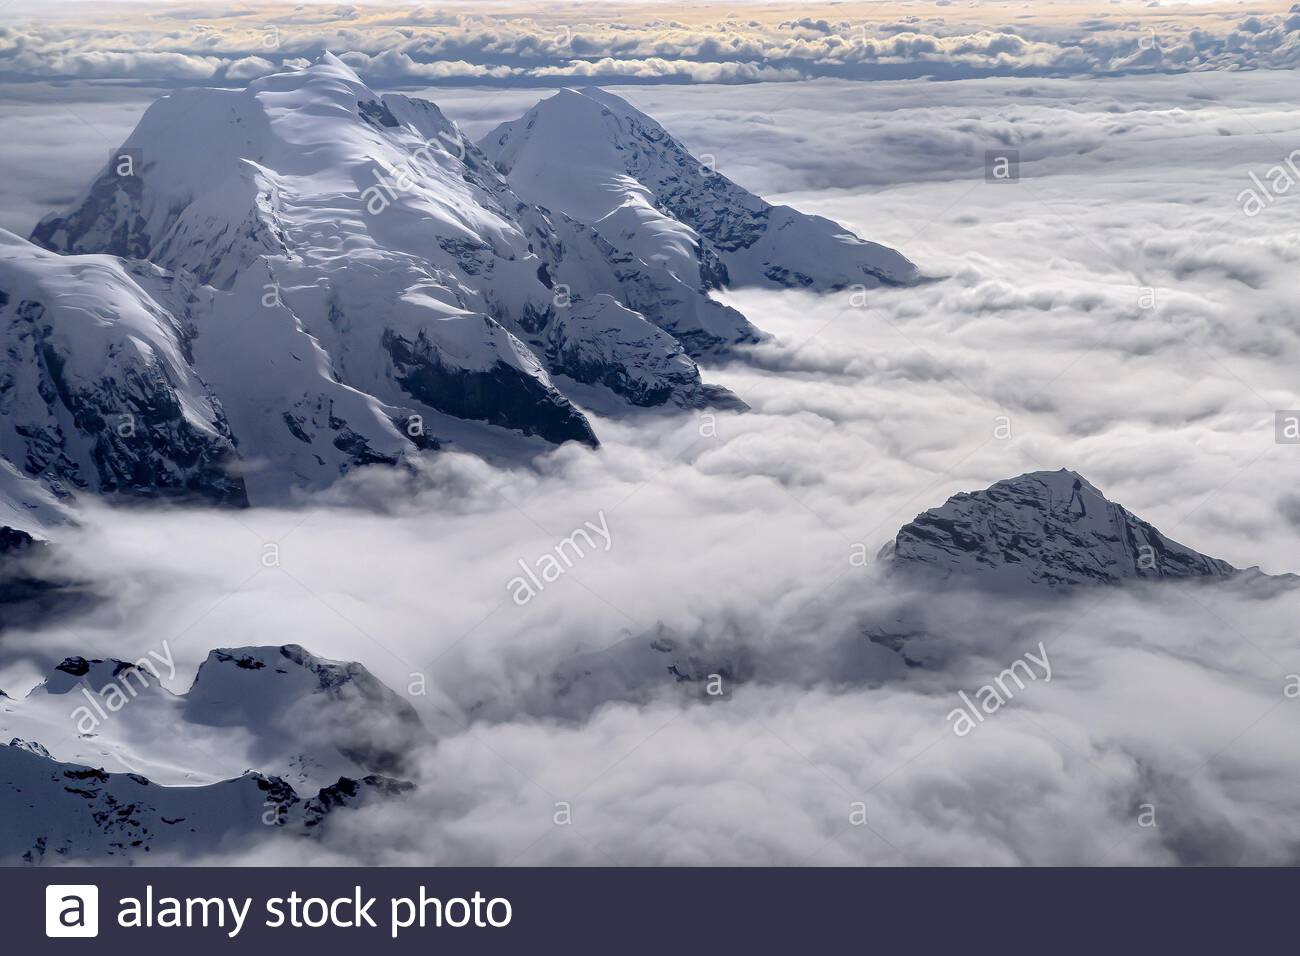 denali-aerial-view-of-the-alaska-range-2